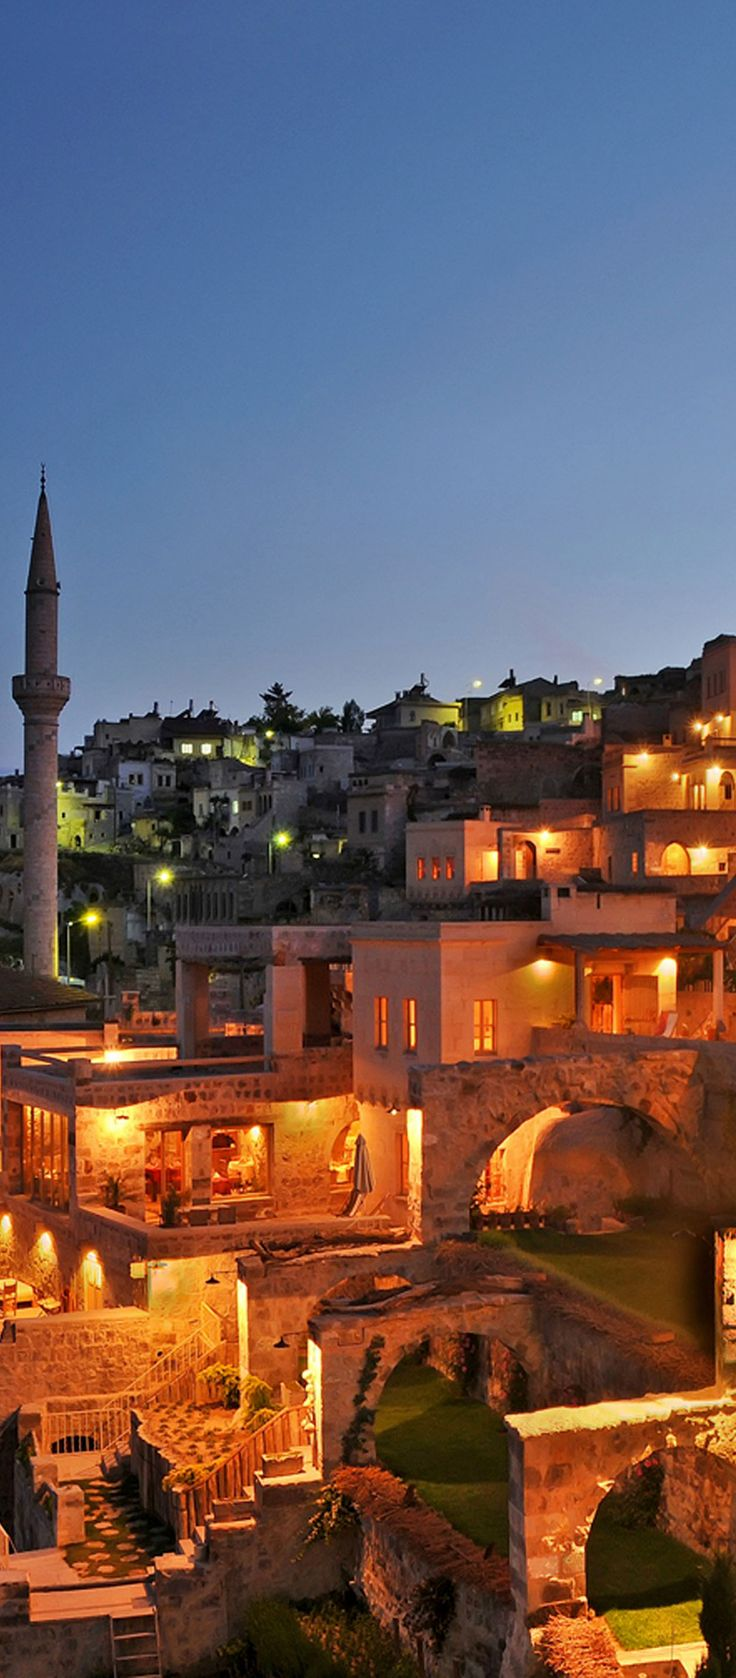 Romantic night lights of Turkey  Best value single trip and annual multi trip international travel insurance to or from Turkey - get a free quite a http://www.clicktravelcover.com/